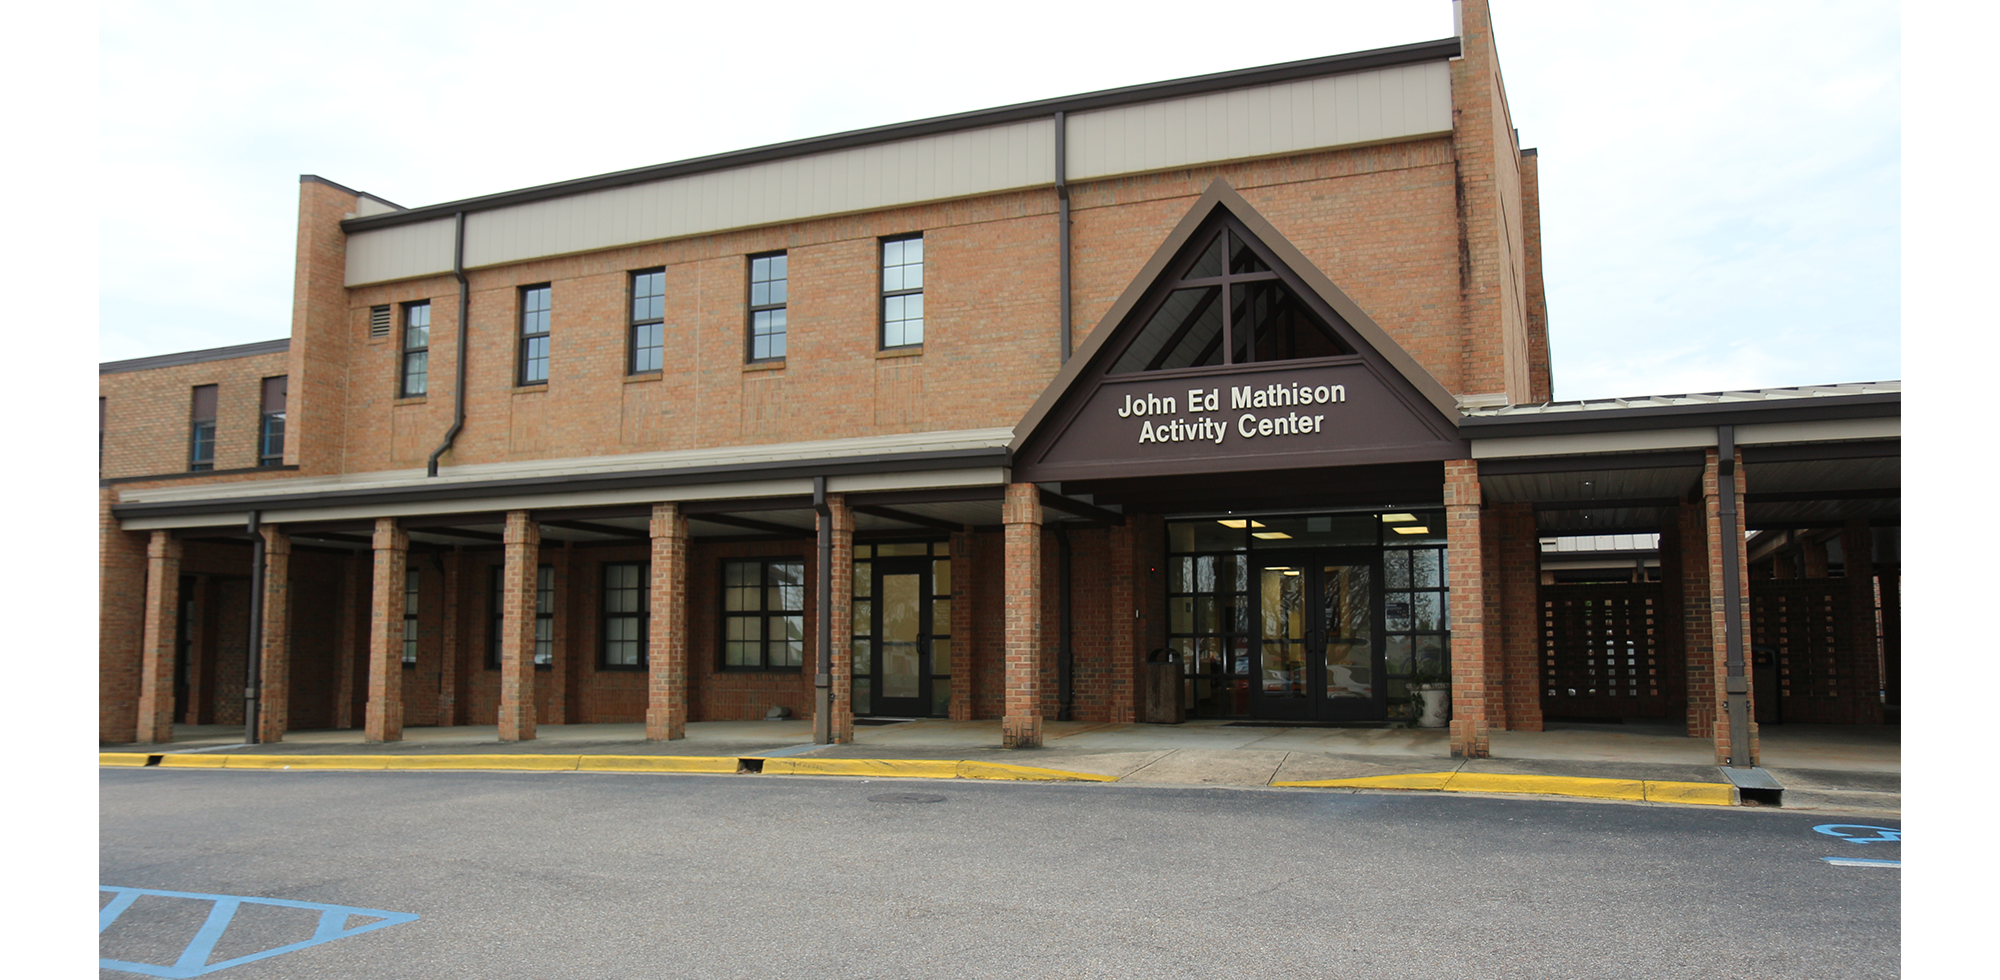 Stallings and Sons general contractors completed the John Ed Mathieson Activity Center at Frazer United Methodist Church